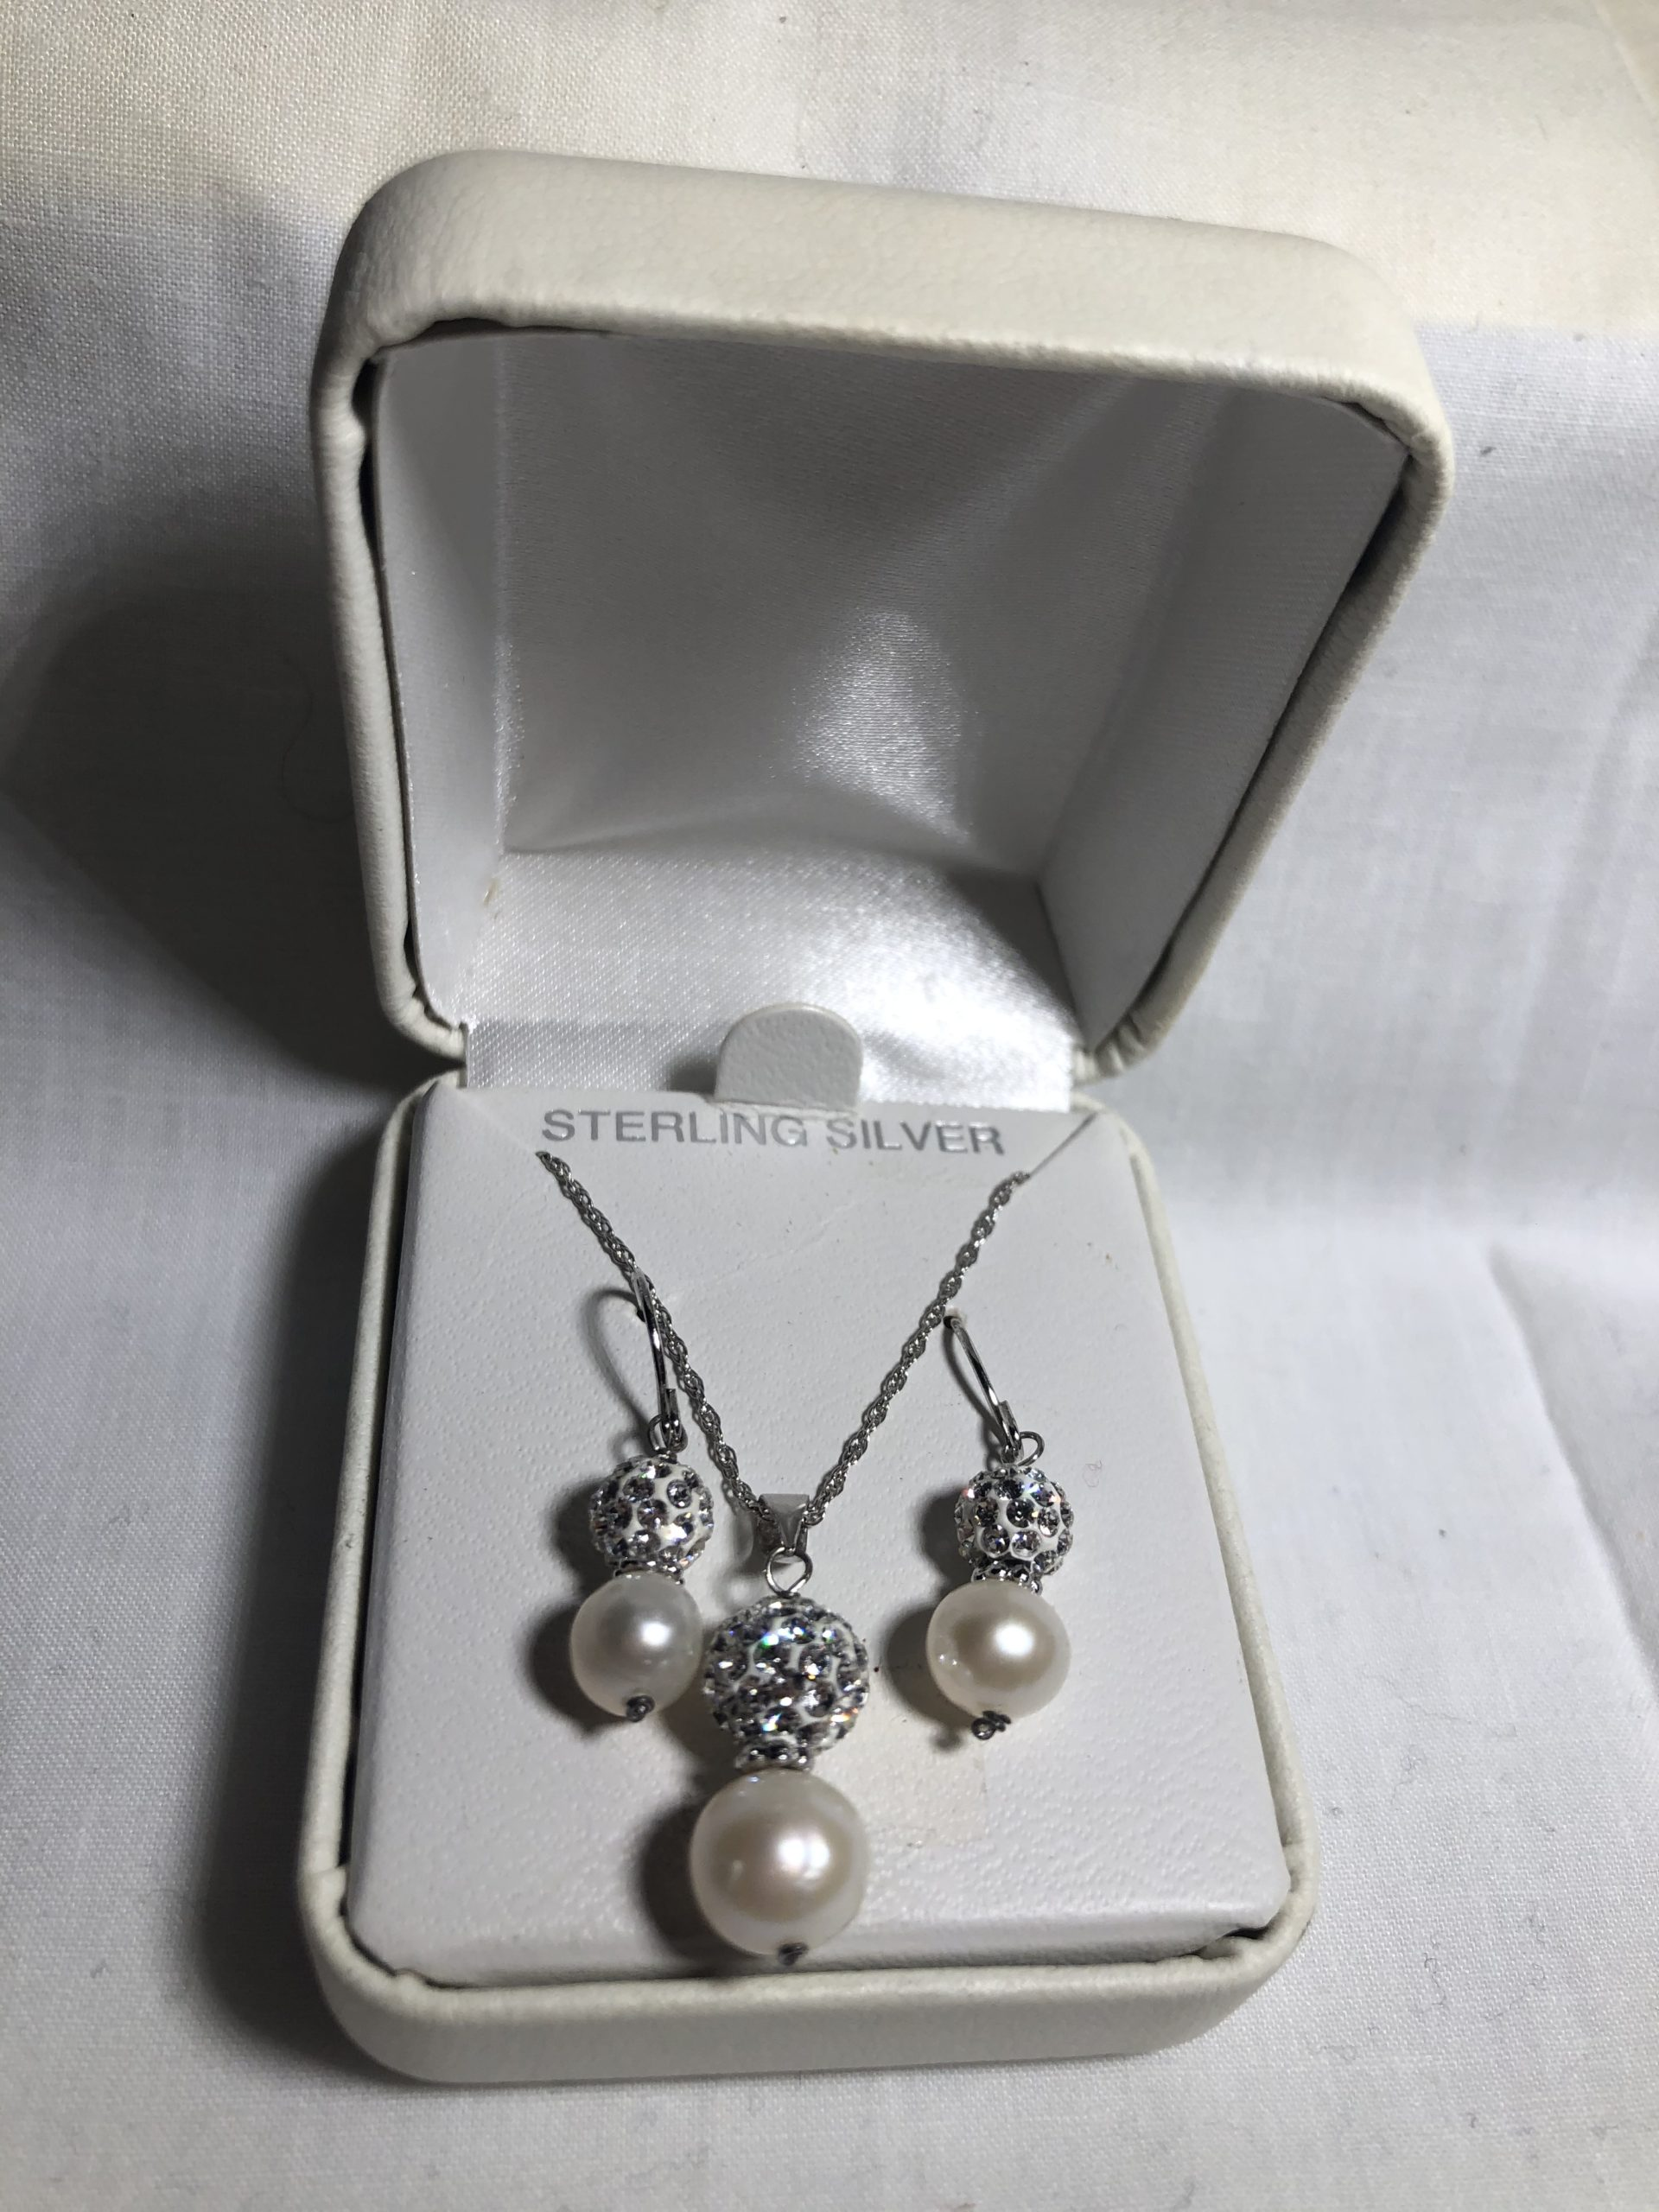 Sterling Silver Matching Necklace & Earring Set, New in Box